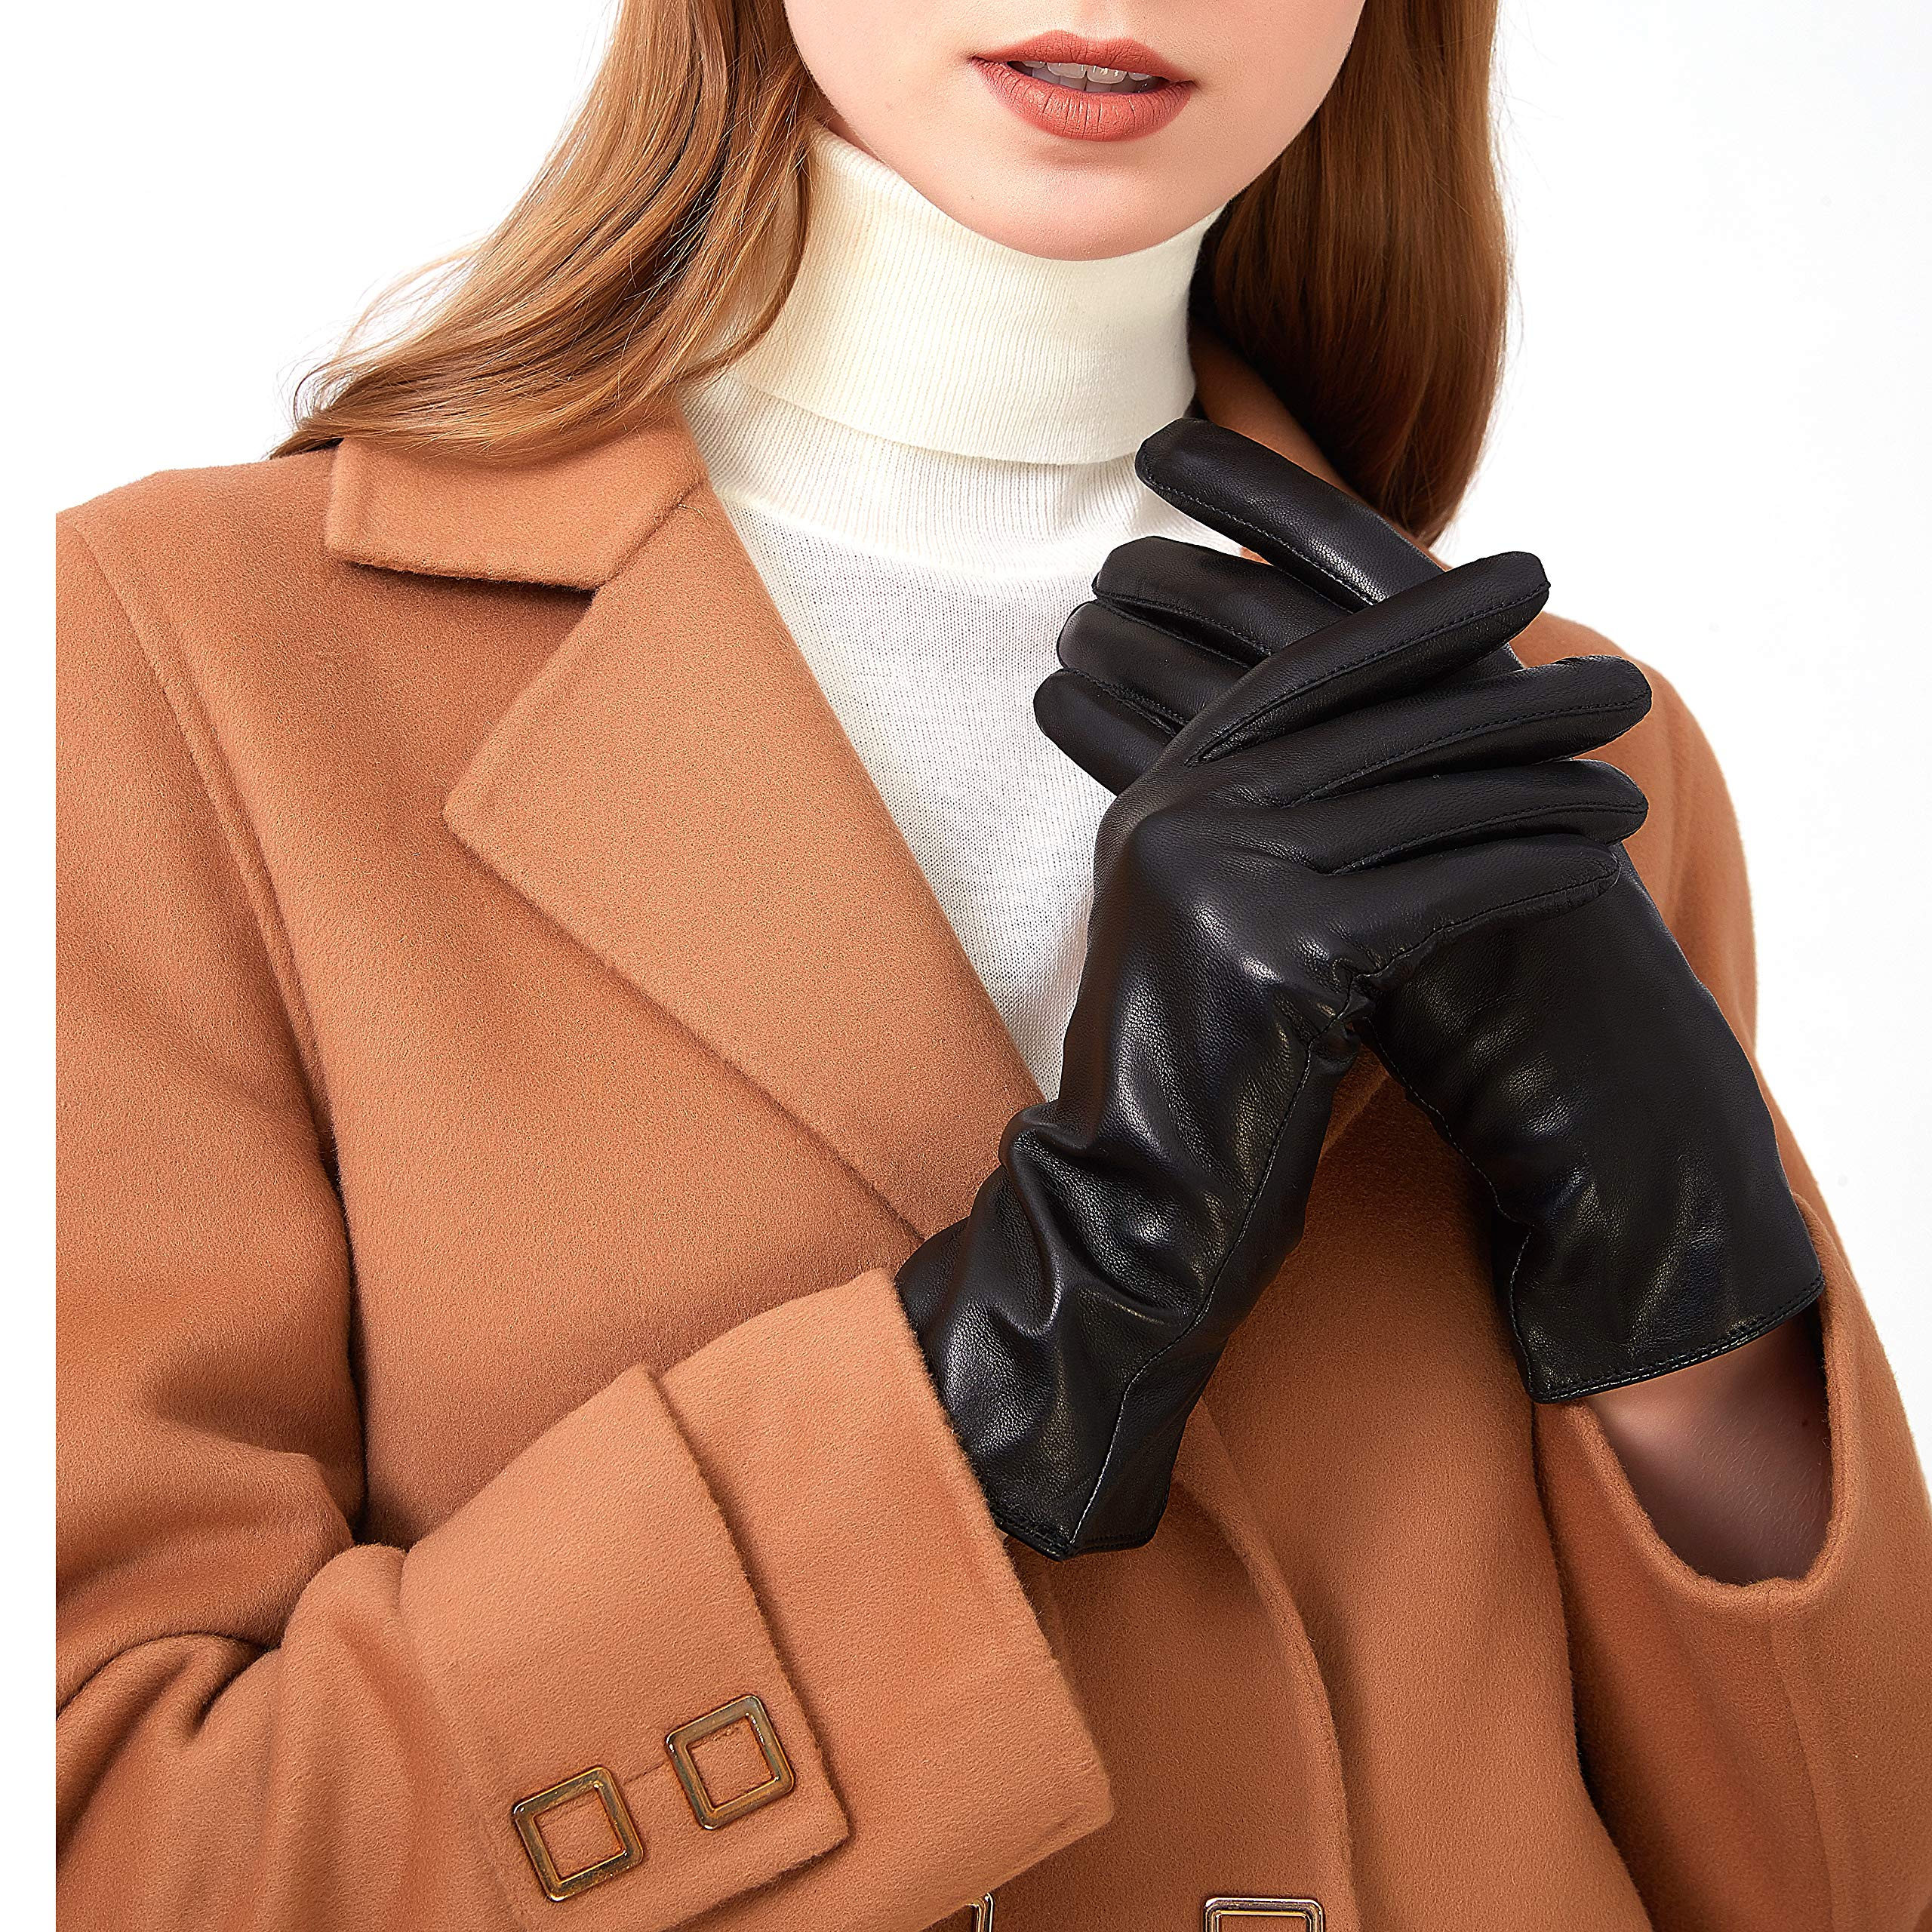 Leather Gloves for Women - Deluxe SheepSkin Leather women's Gloves Cashmere Lining by ZQ-Collection